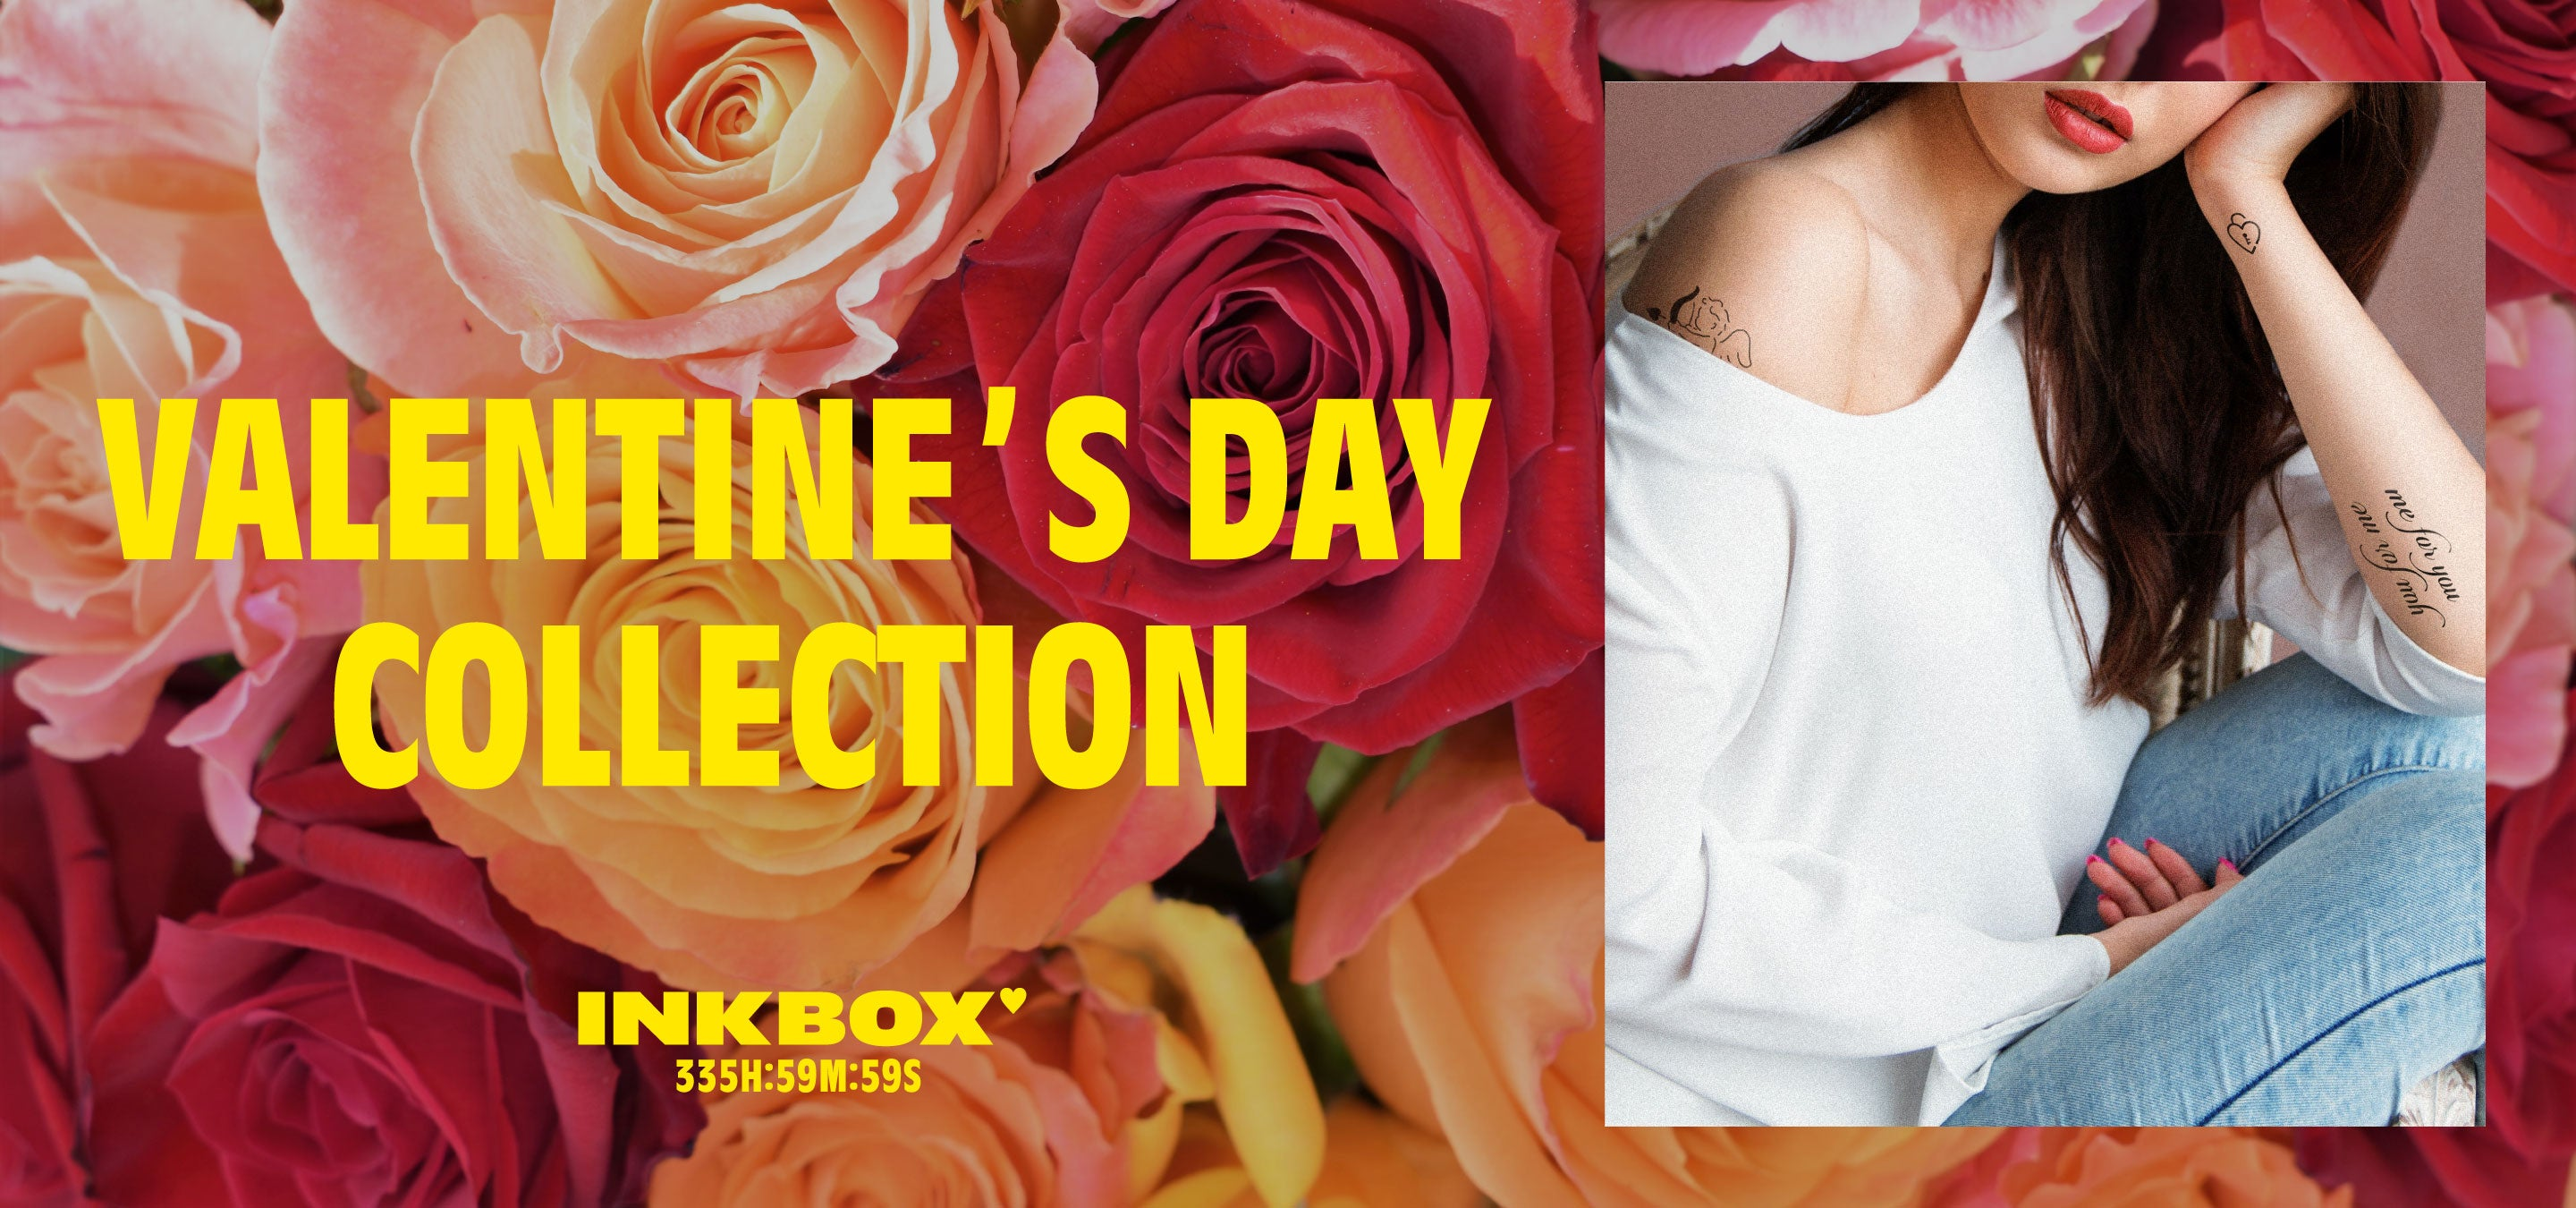 valentine'sdaycollection